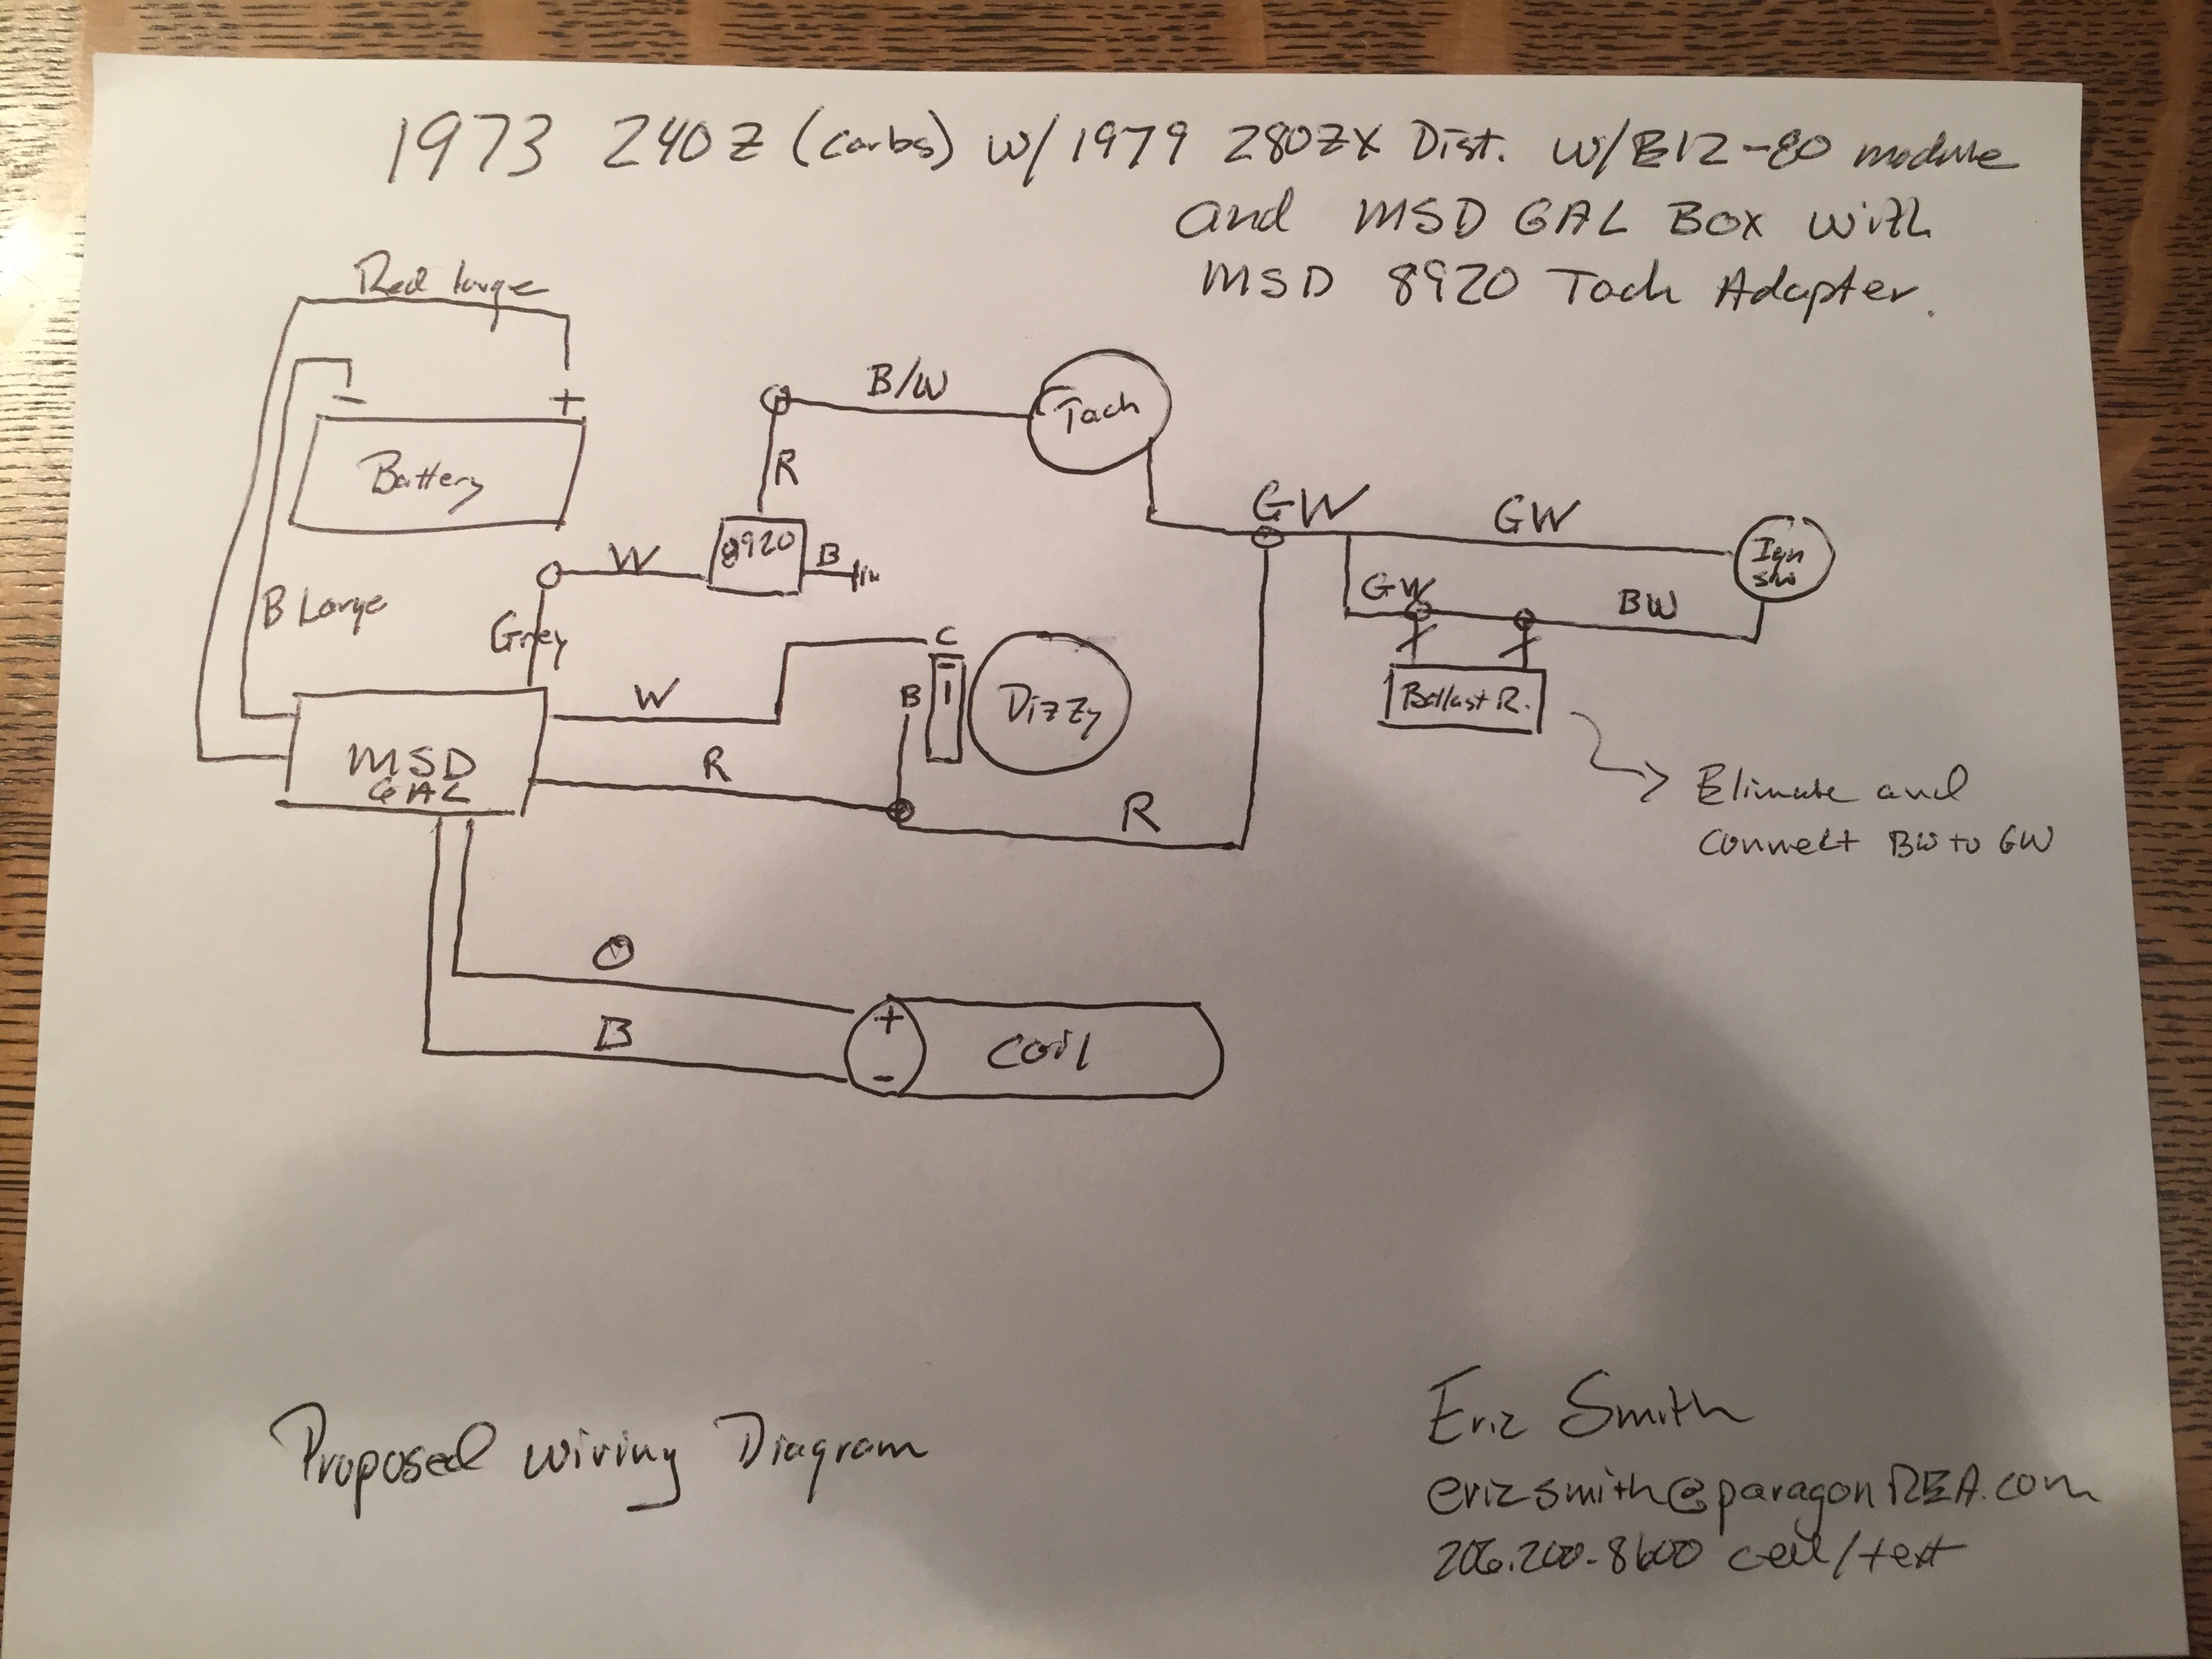 Msd Wiring Diagram For H22 Quick Start Guide Of Coil And 6al Library Rh 29 Kaufmed De 6420 Gm Ignition